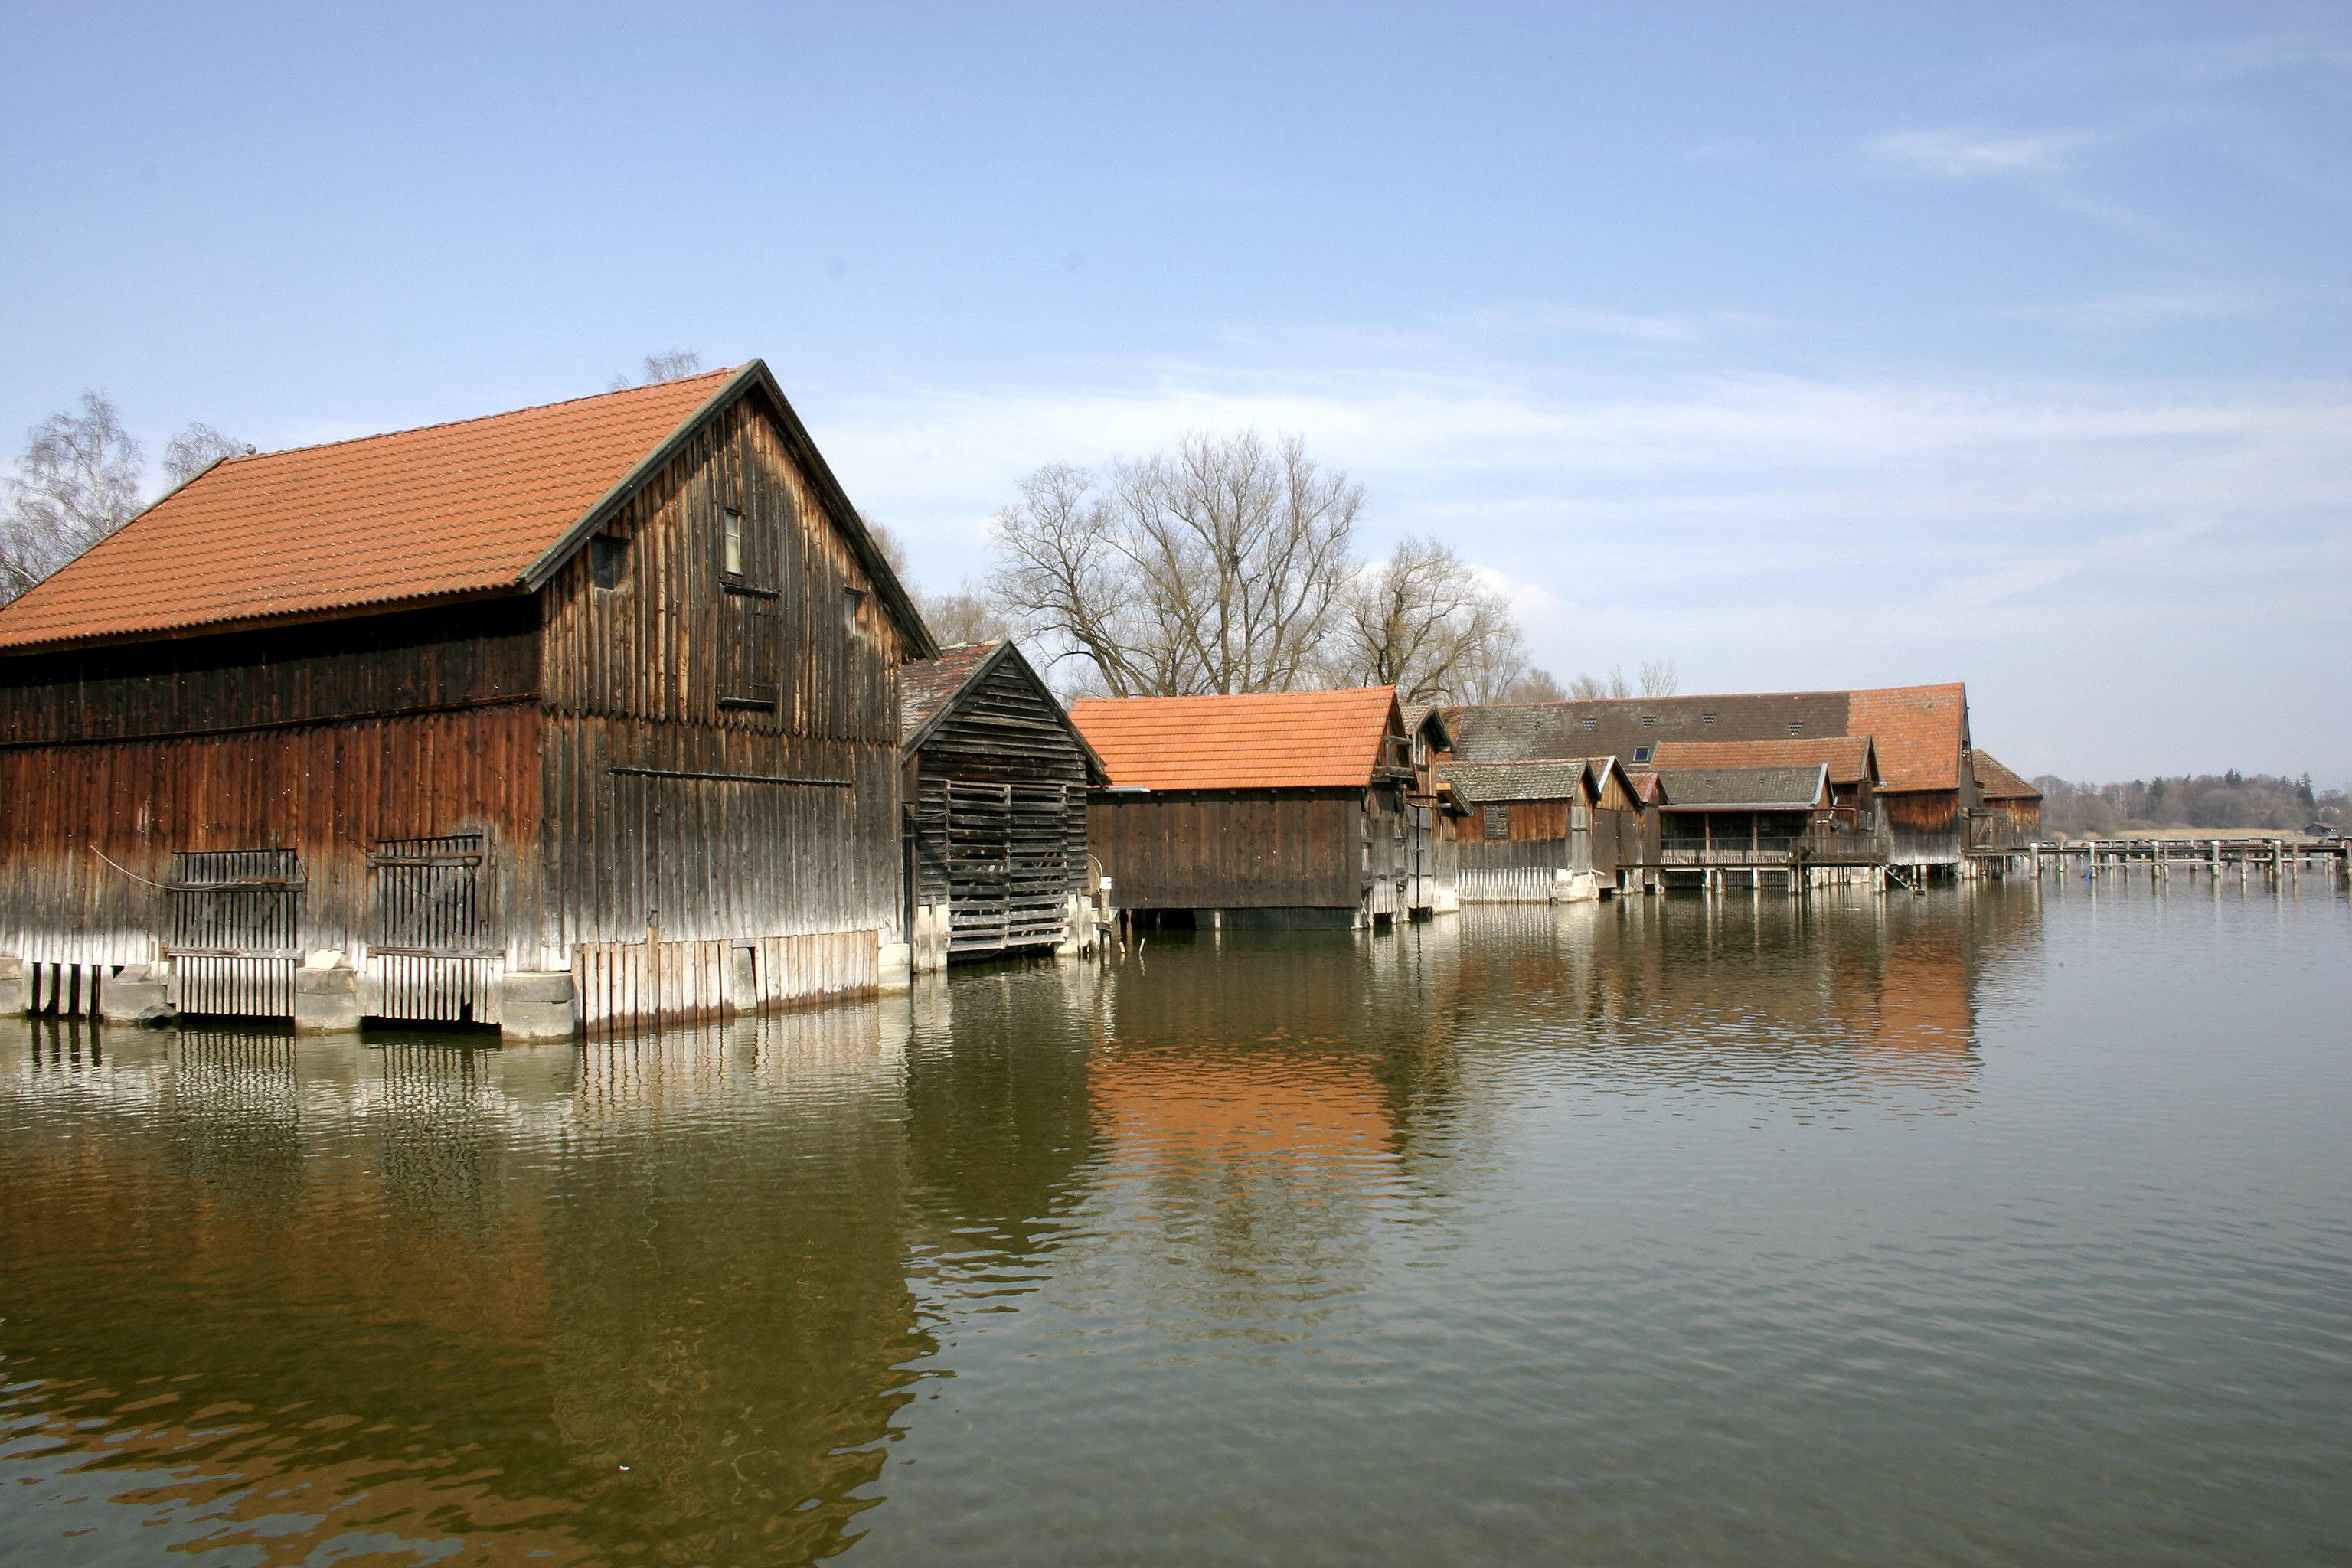 File Ammersee Boat Houses 01 Jpg Wikimedia Commons